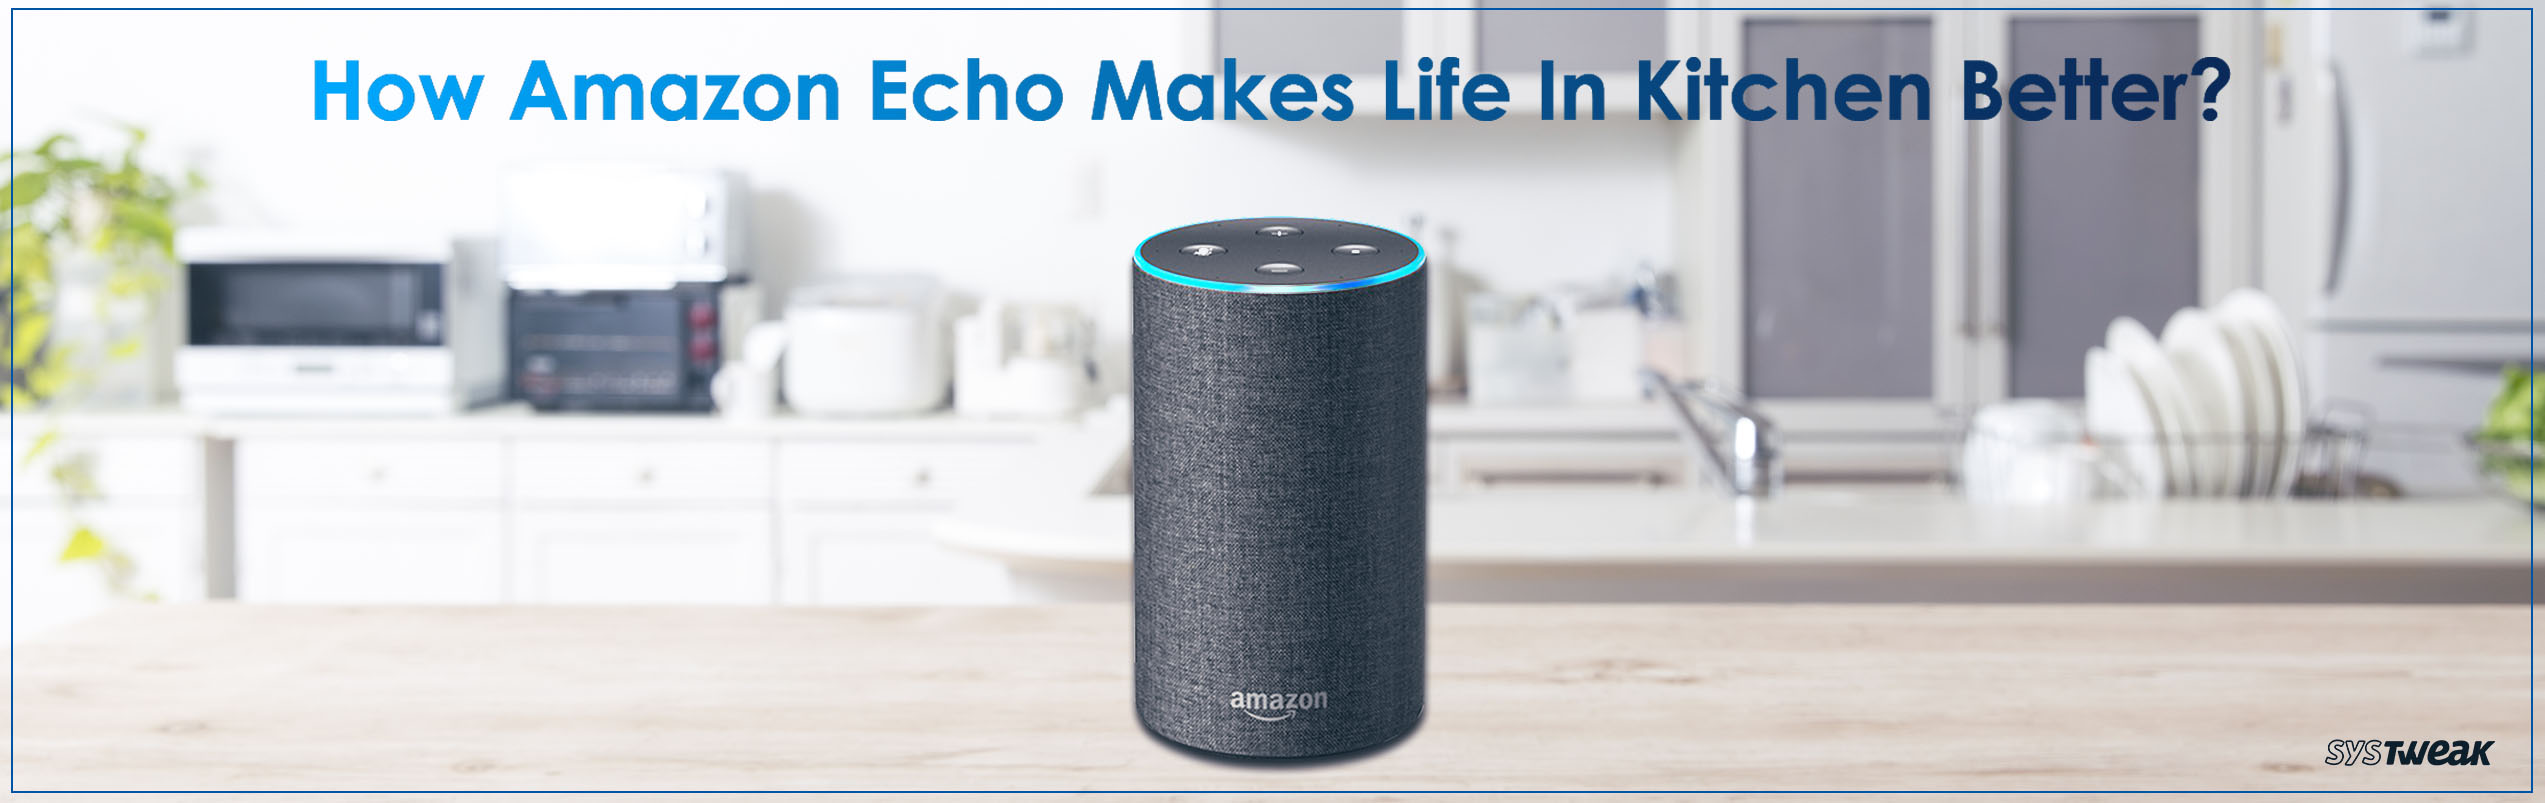 Amazon Echo Makes Life In Kitchen Better